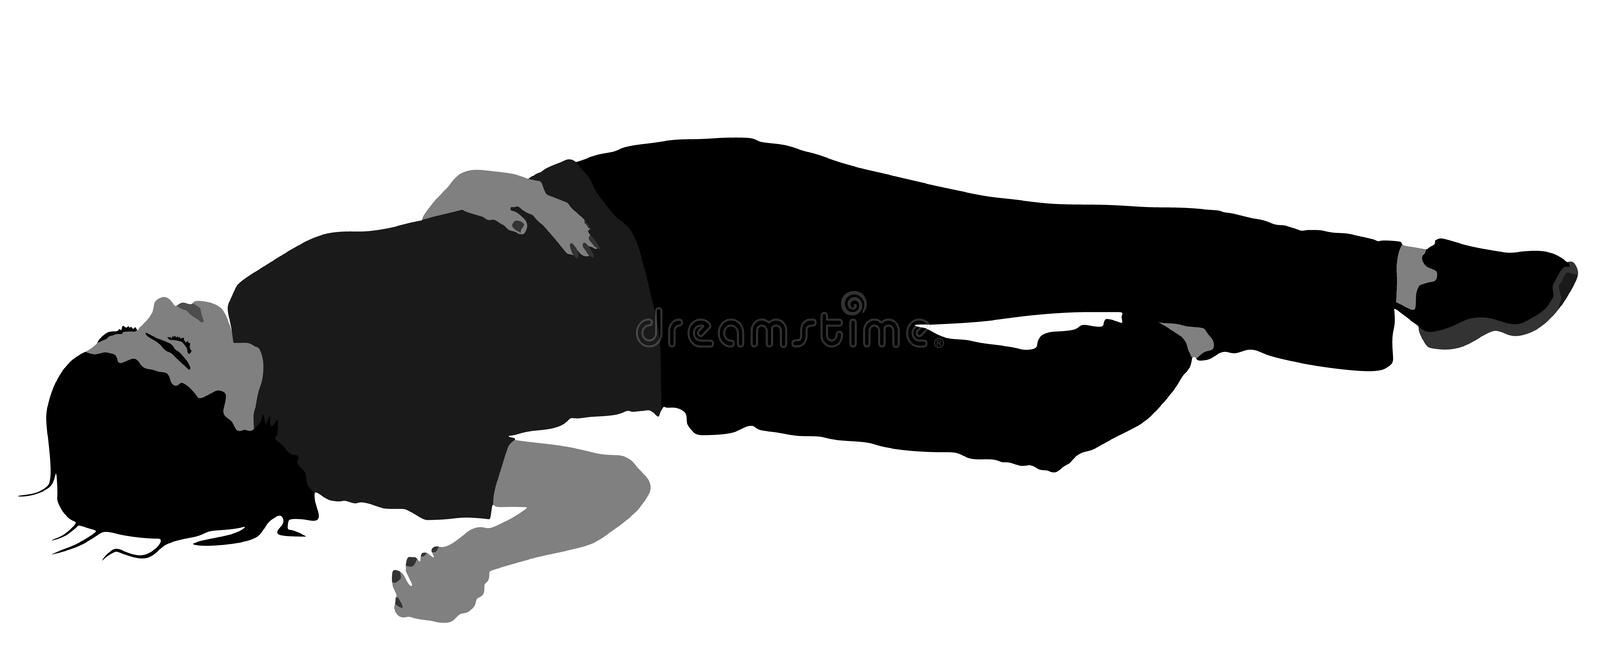 Dead girl lying on the sidewalk silhouette. Drunk girl unconscious after party. Injured lady after car crush accident. Dead girl lying on the sidewalk stock illustration